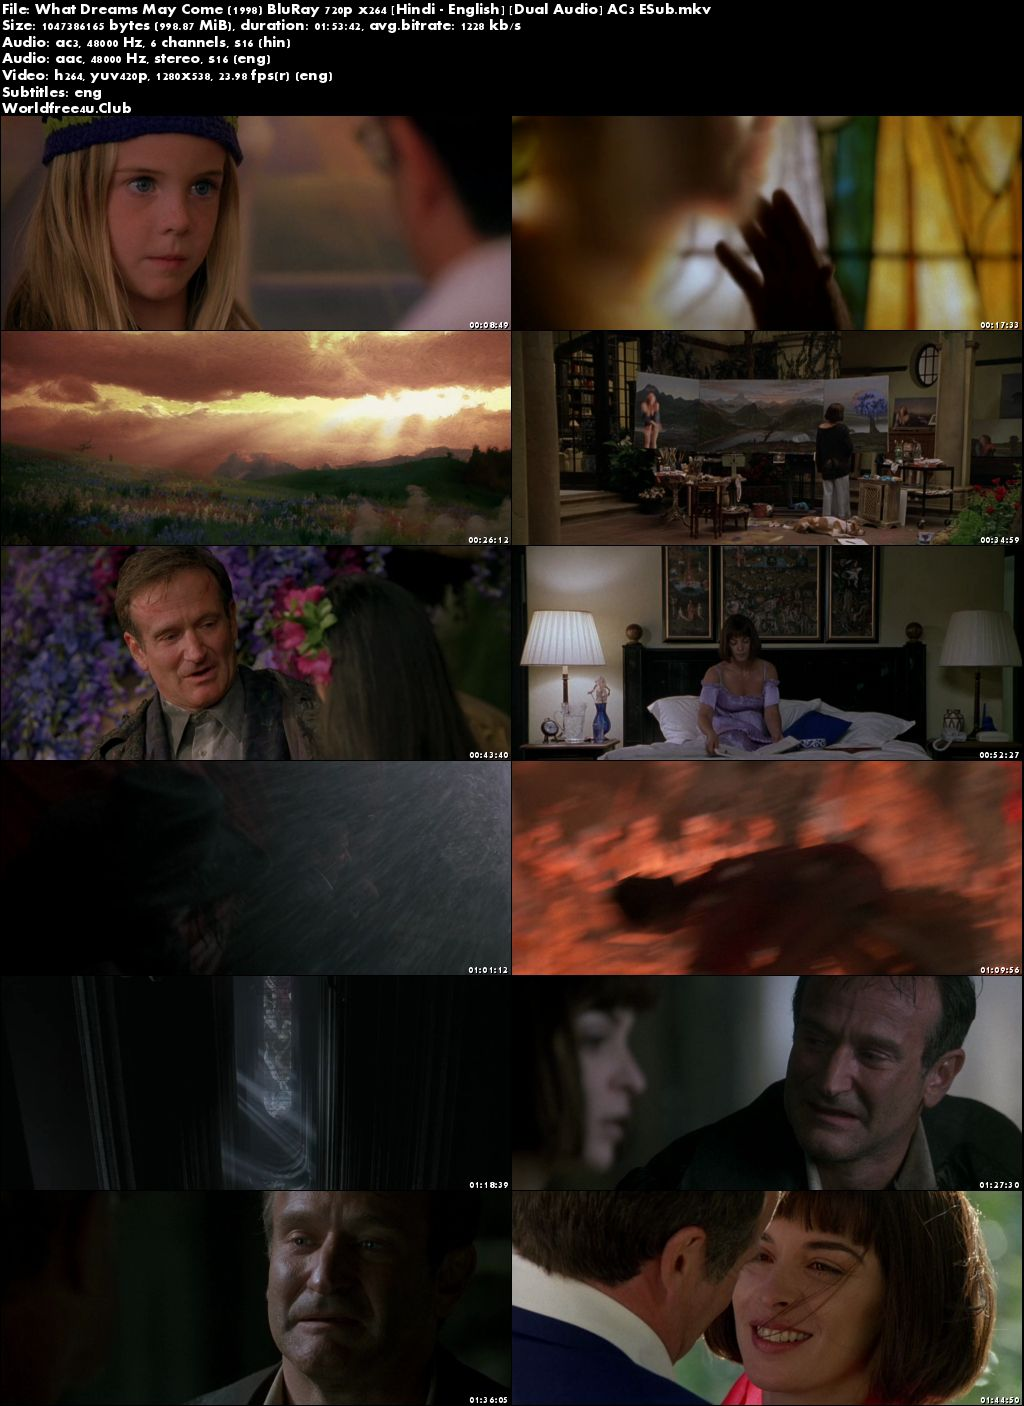 Screen Shoot of What Dreams May Come 1998 BRRip 720p Dual Audio ESub Watch Online Hindi Dubbed